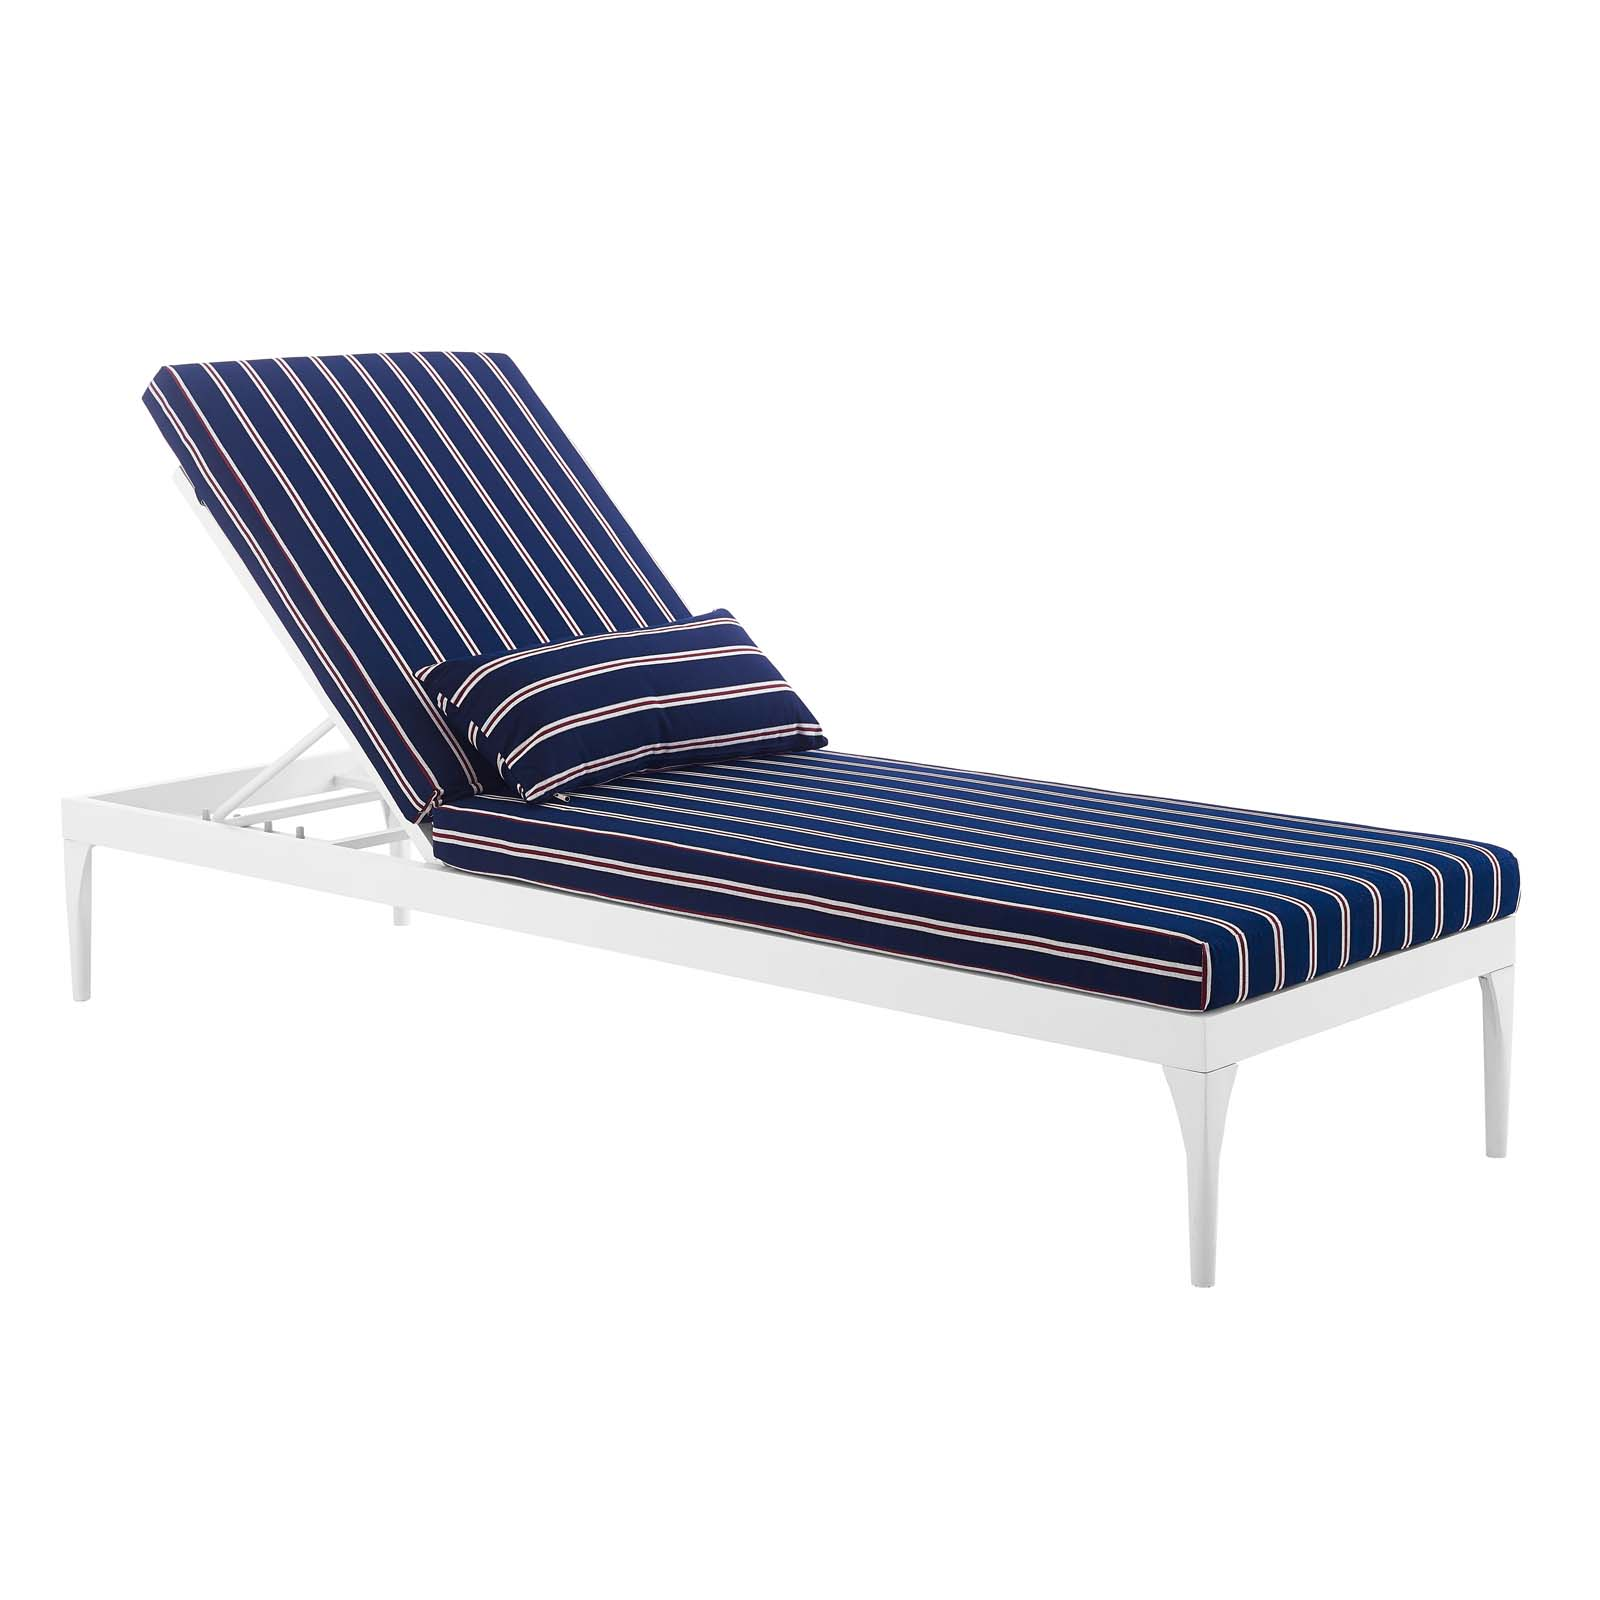 Details About Perspective Cushion Outdoor Patio Chaise Lounge Chair White Charcoal